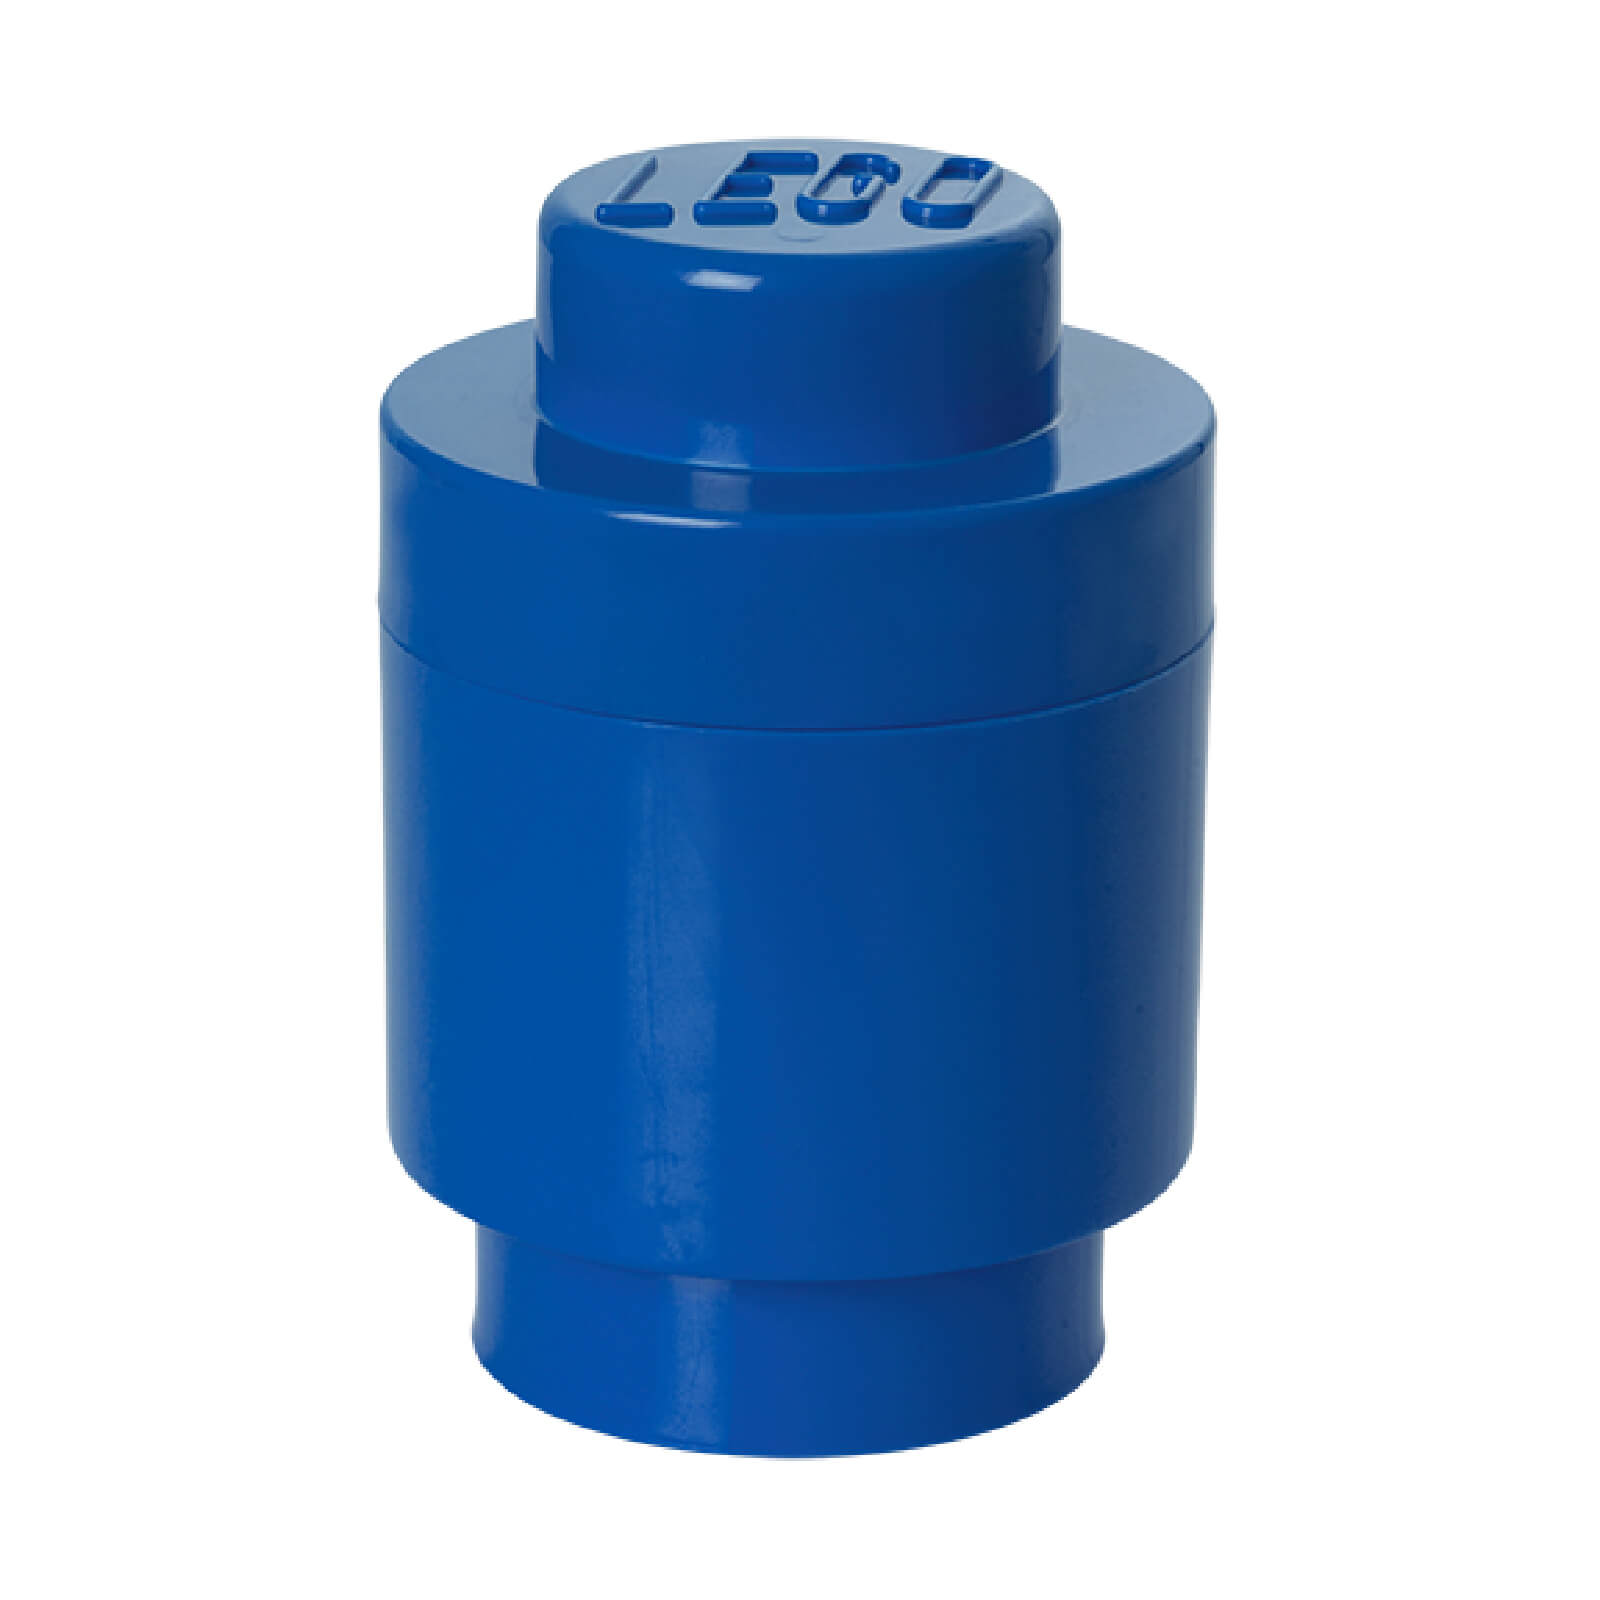 LEGO Storage Brick 1 - Bright Blue (Round)